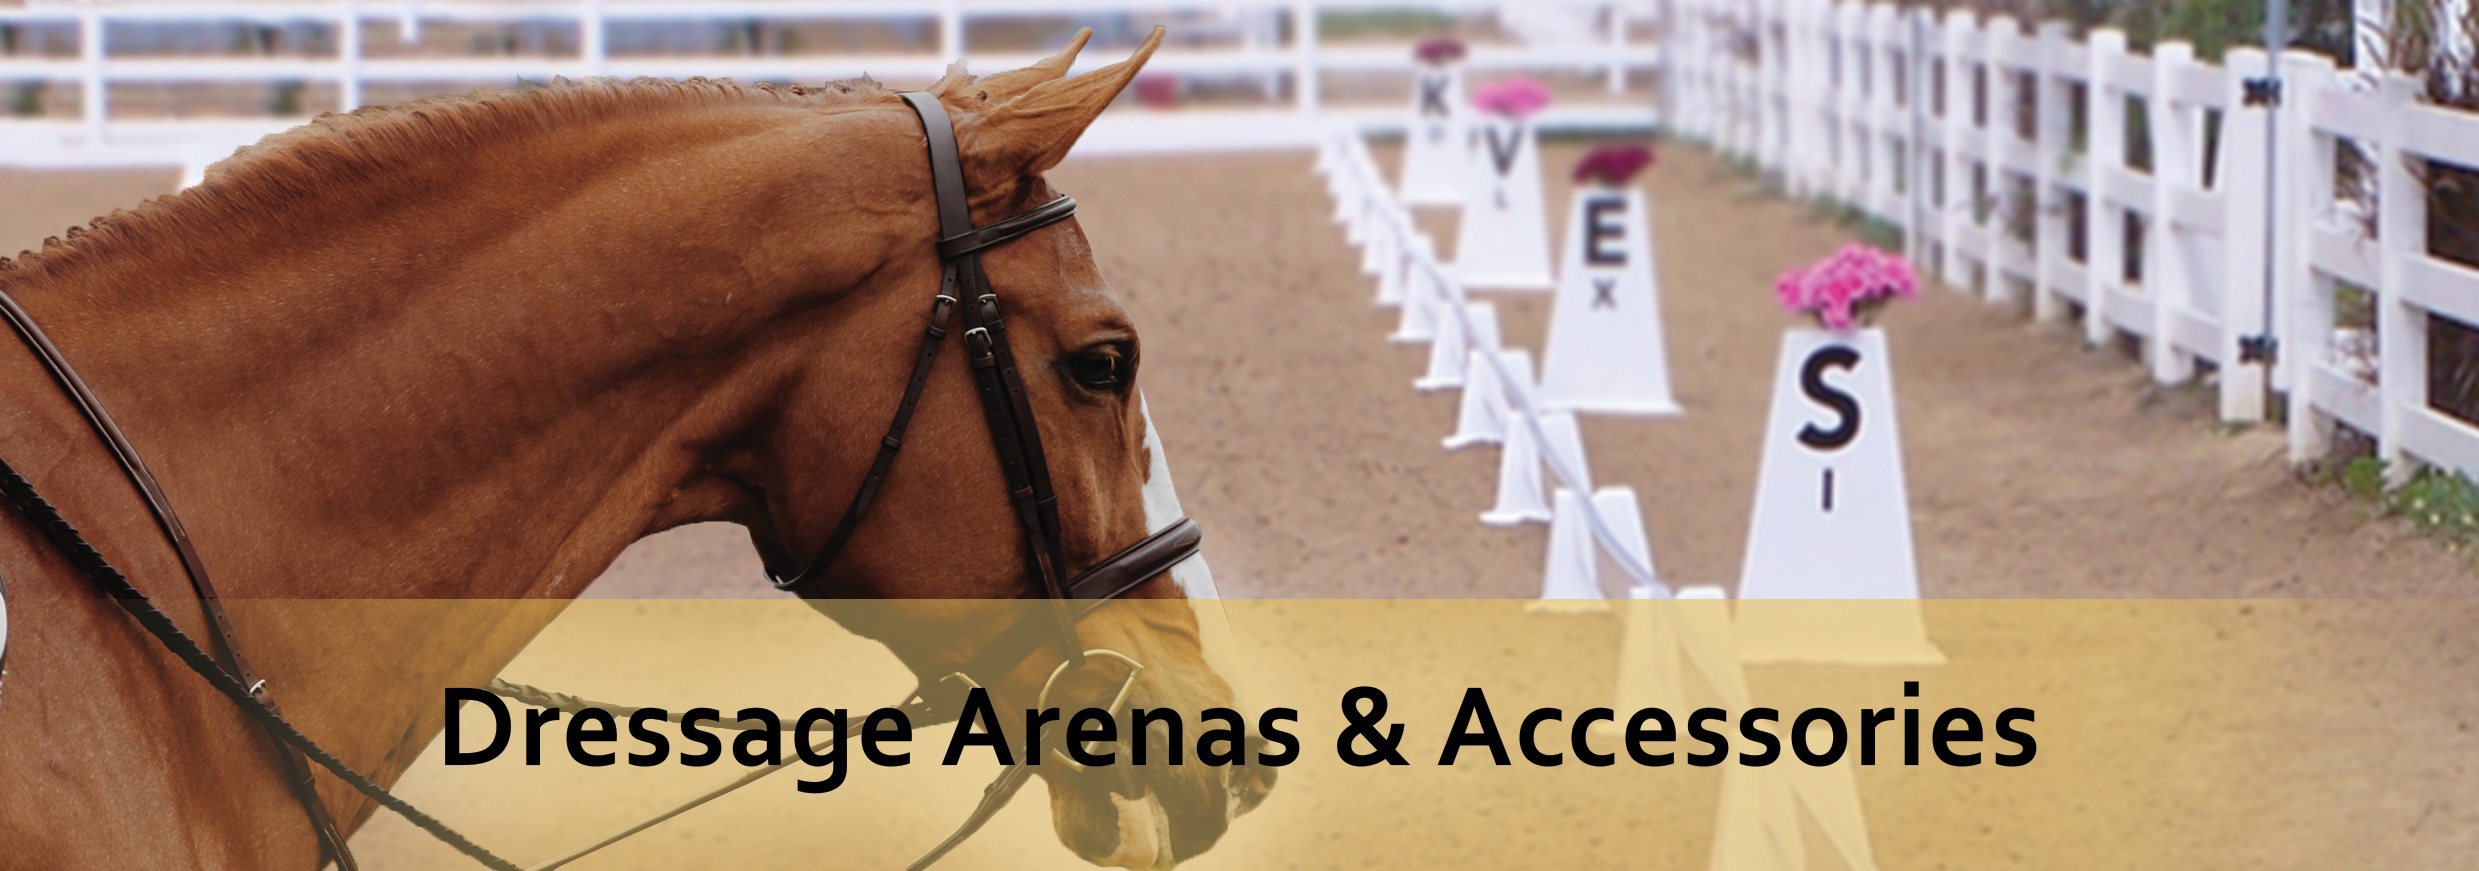 dressage arenas and accessories